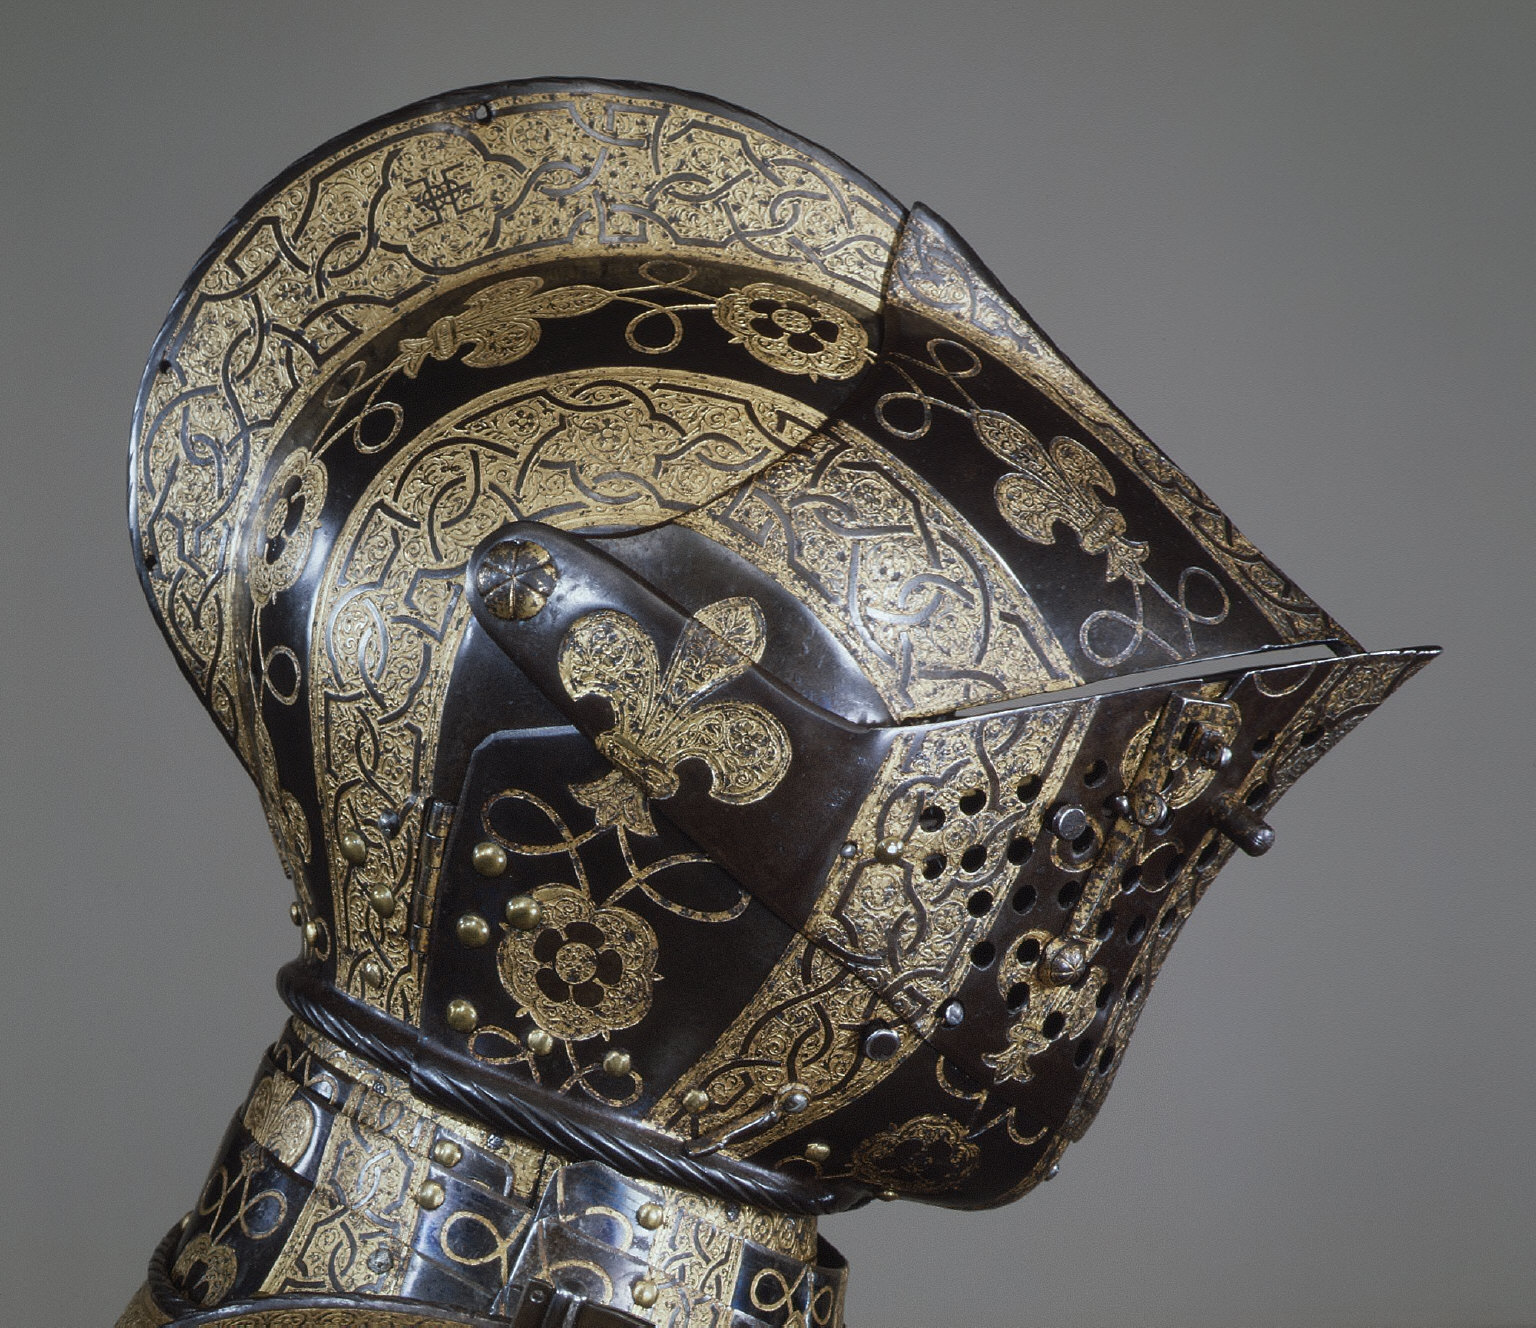 Armor of George Clifford, Third Earl of Cumberland